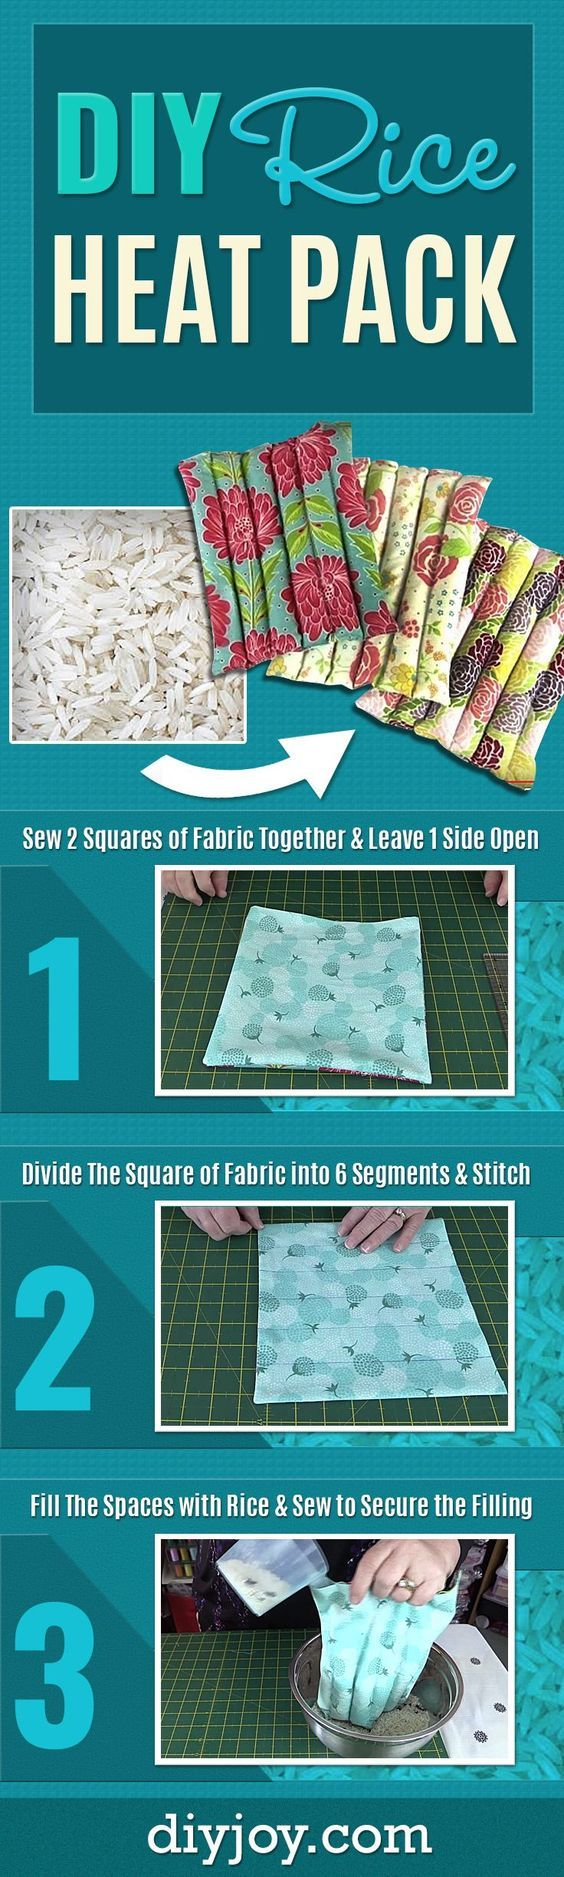 108 Best Boutique Ideas Images On Pinterest Sewing Ideas